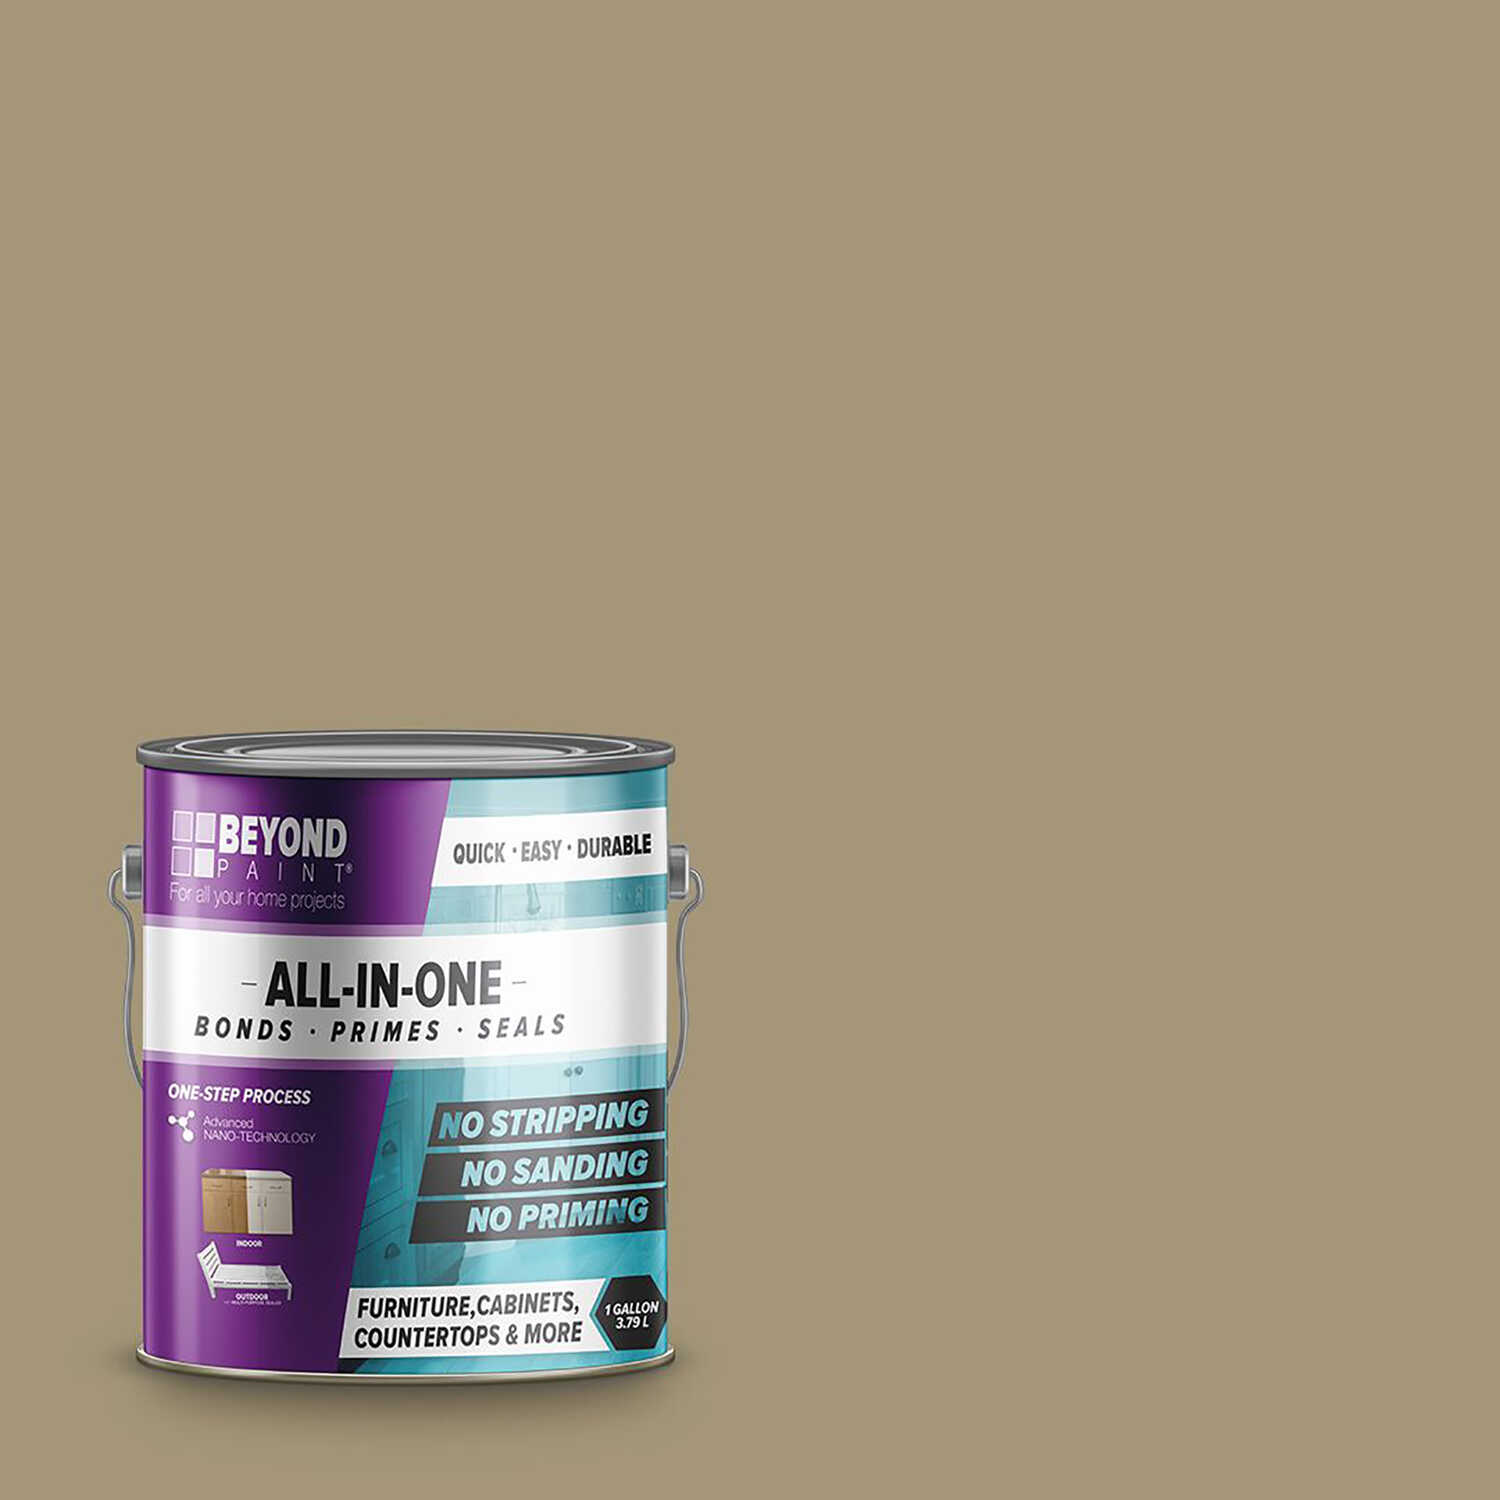 BEYOND PAINT  Matte  Linen  Water-Based  Acrylic  All-In-One Paint  1 gal.